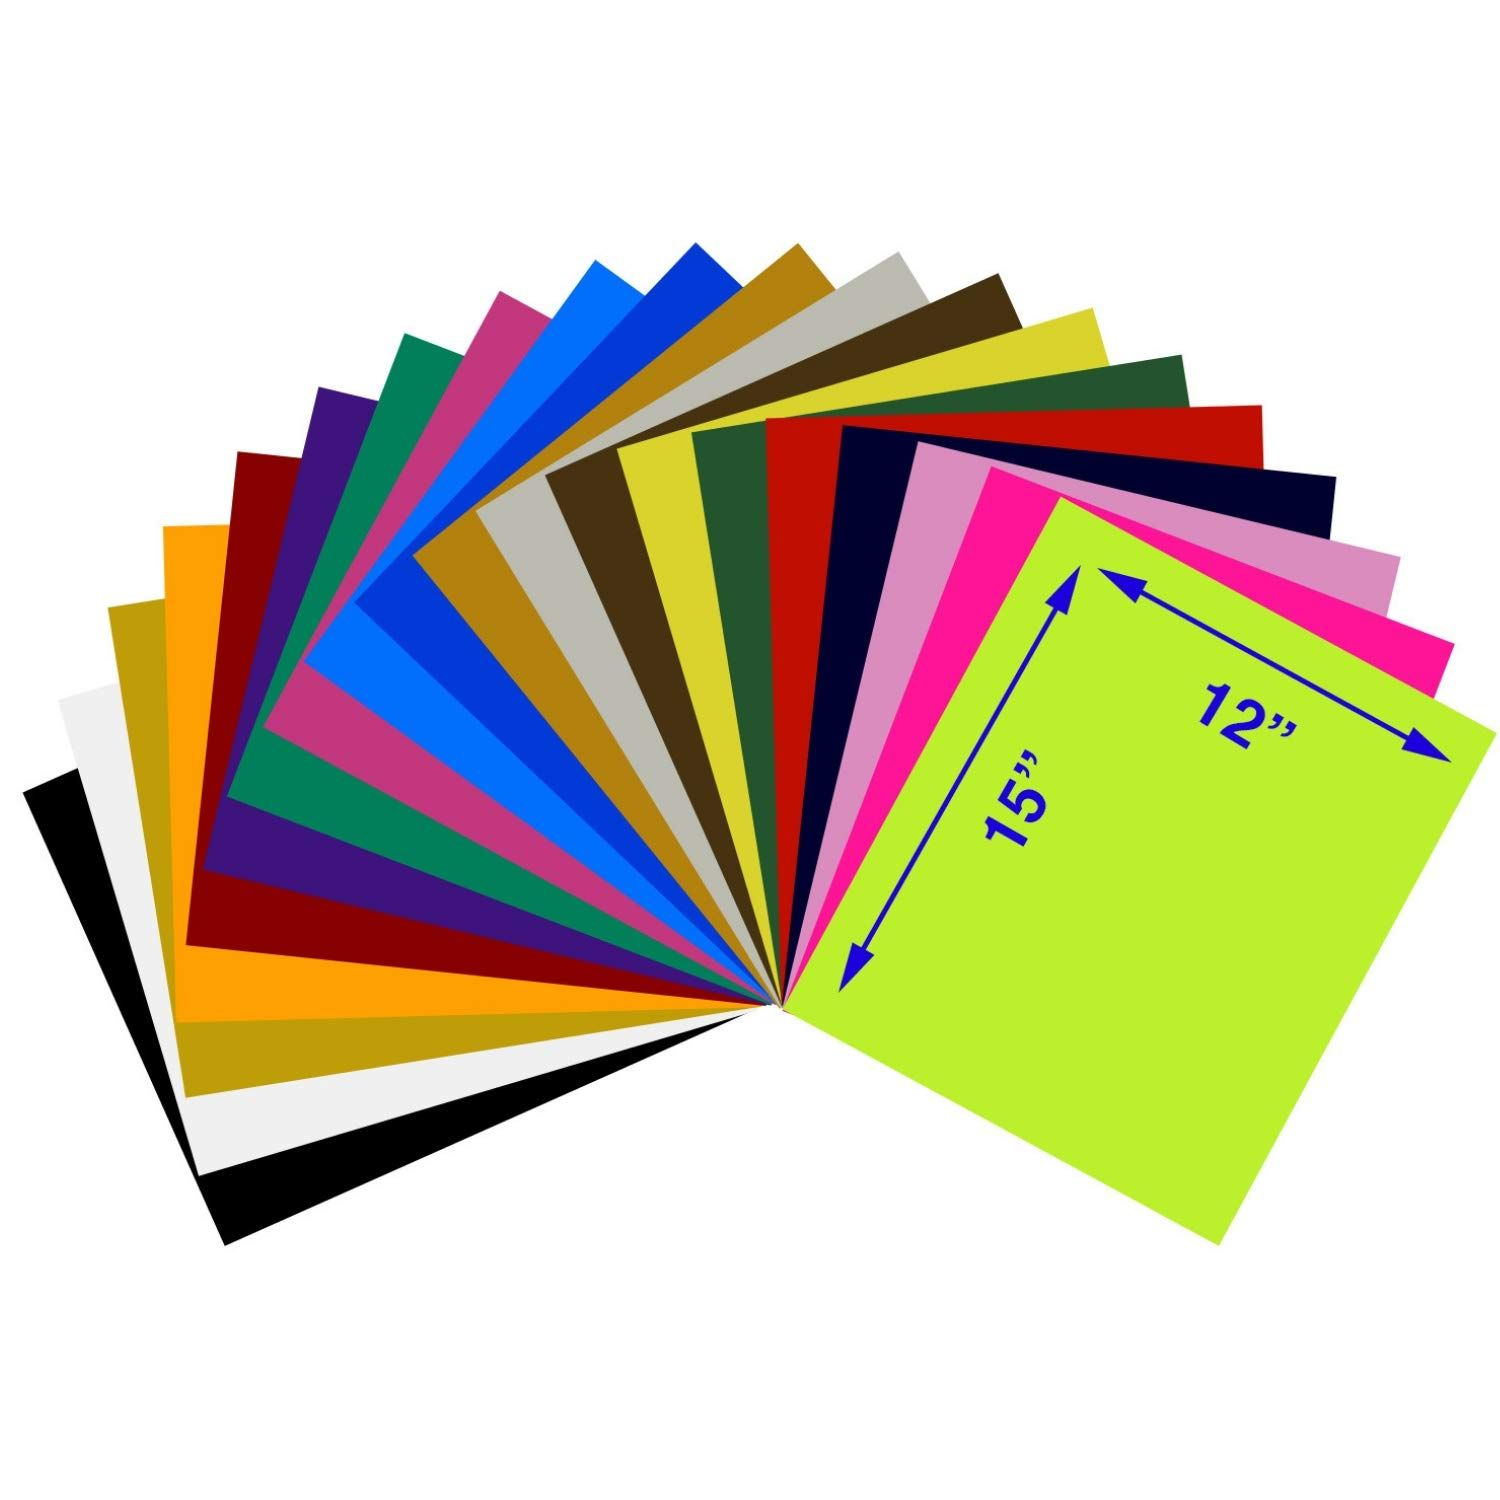 Heat Transfer Vinyl Assorted Colors Starter Pack 20 Sheets 12 X 15 Htv Bundle Iron On For Diy T Shirts Heat Transfer Vinyl Iron On Letters Small Letters